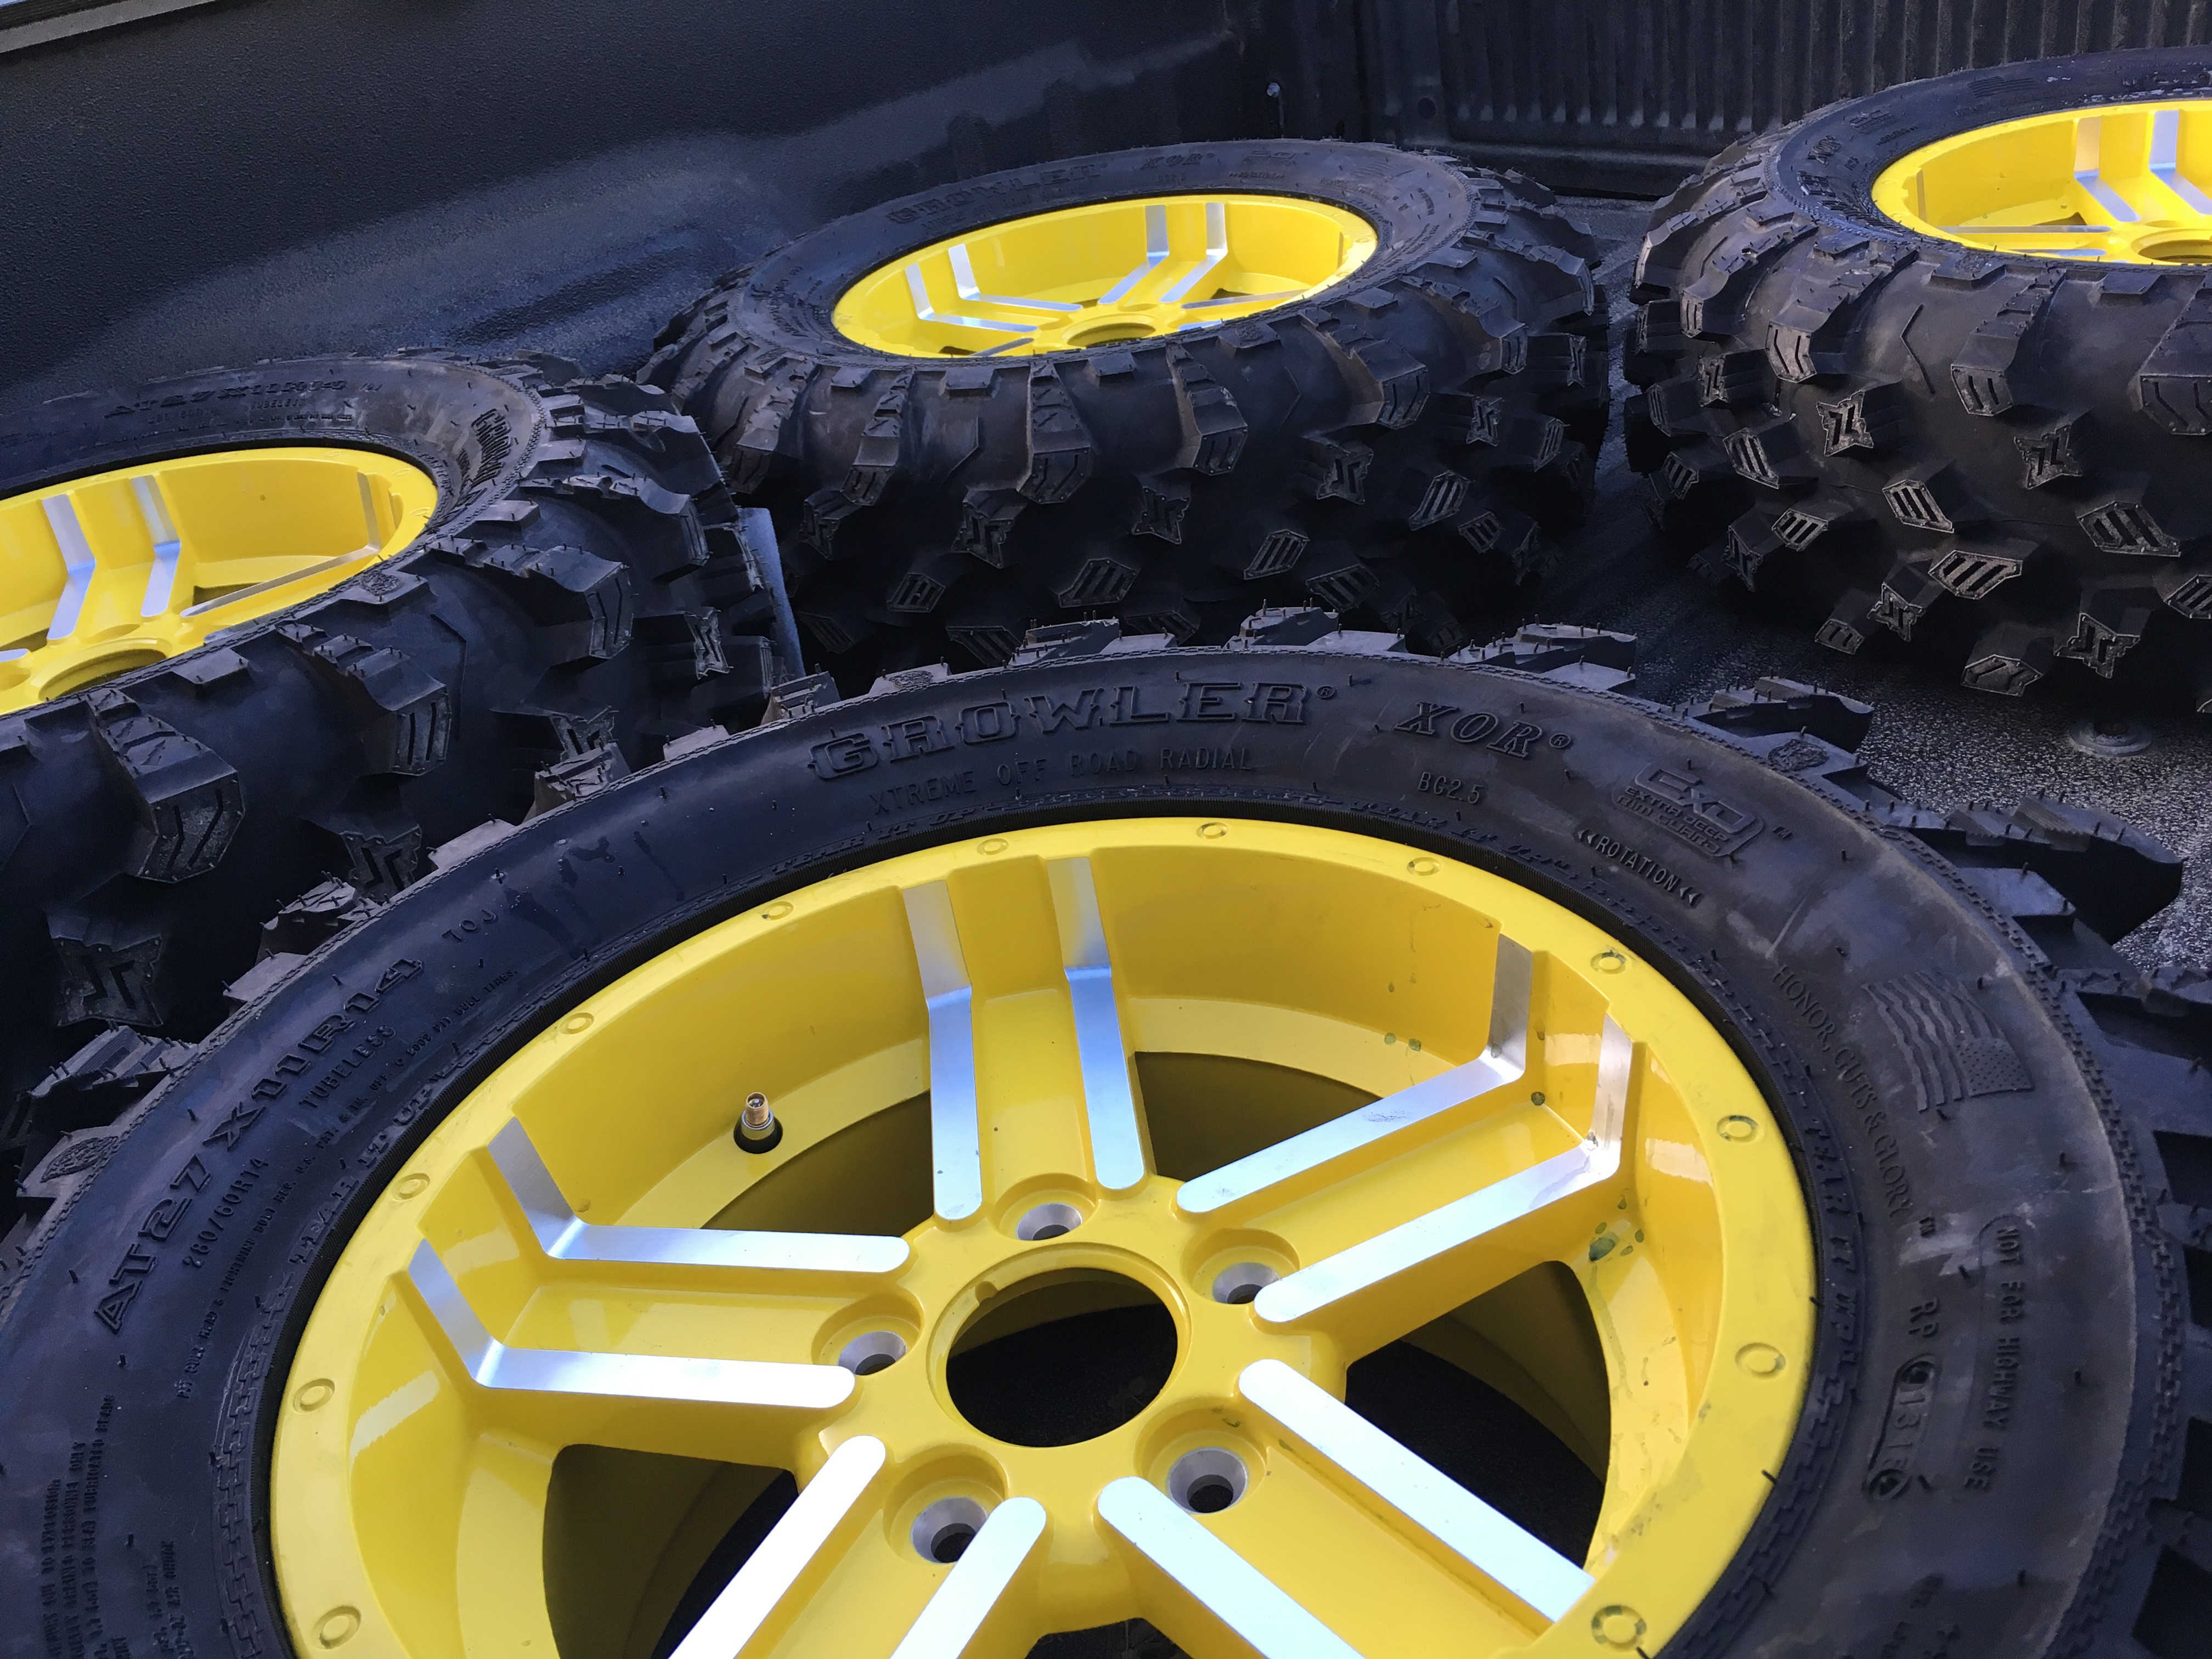 New Wheels And Tires John Deere Gator Forums HD Wallpapers Download free images and photos [musssic.tk]